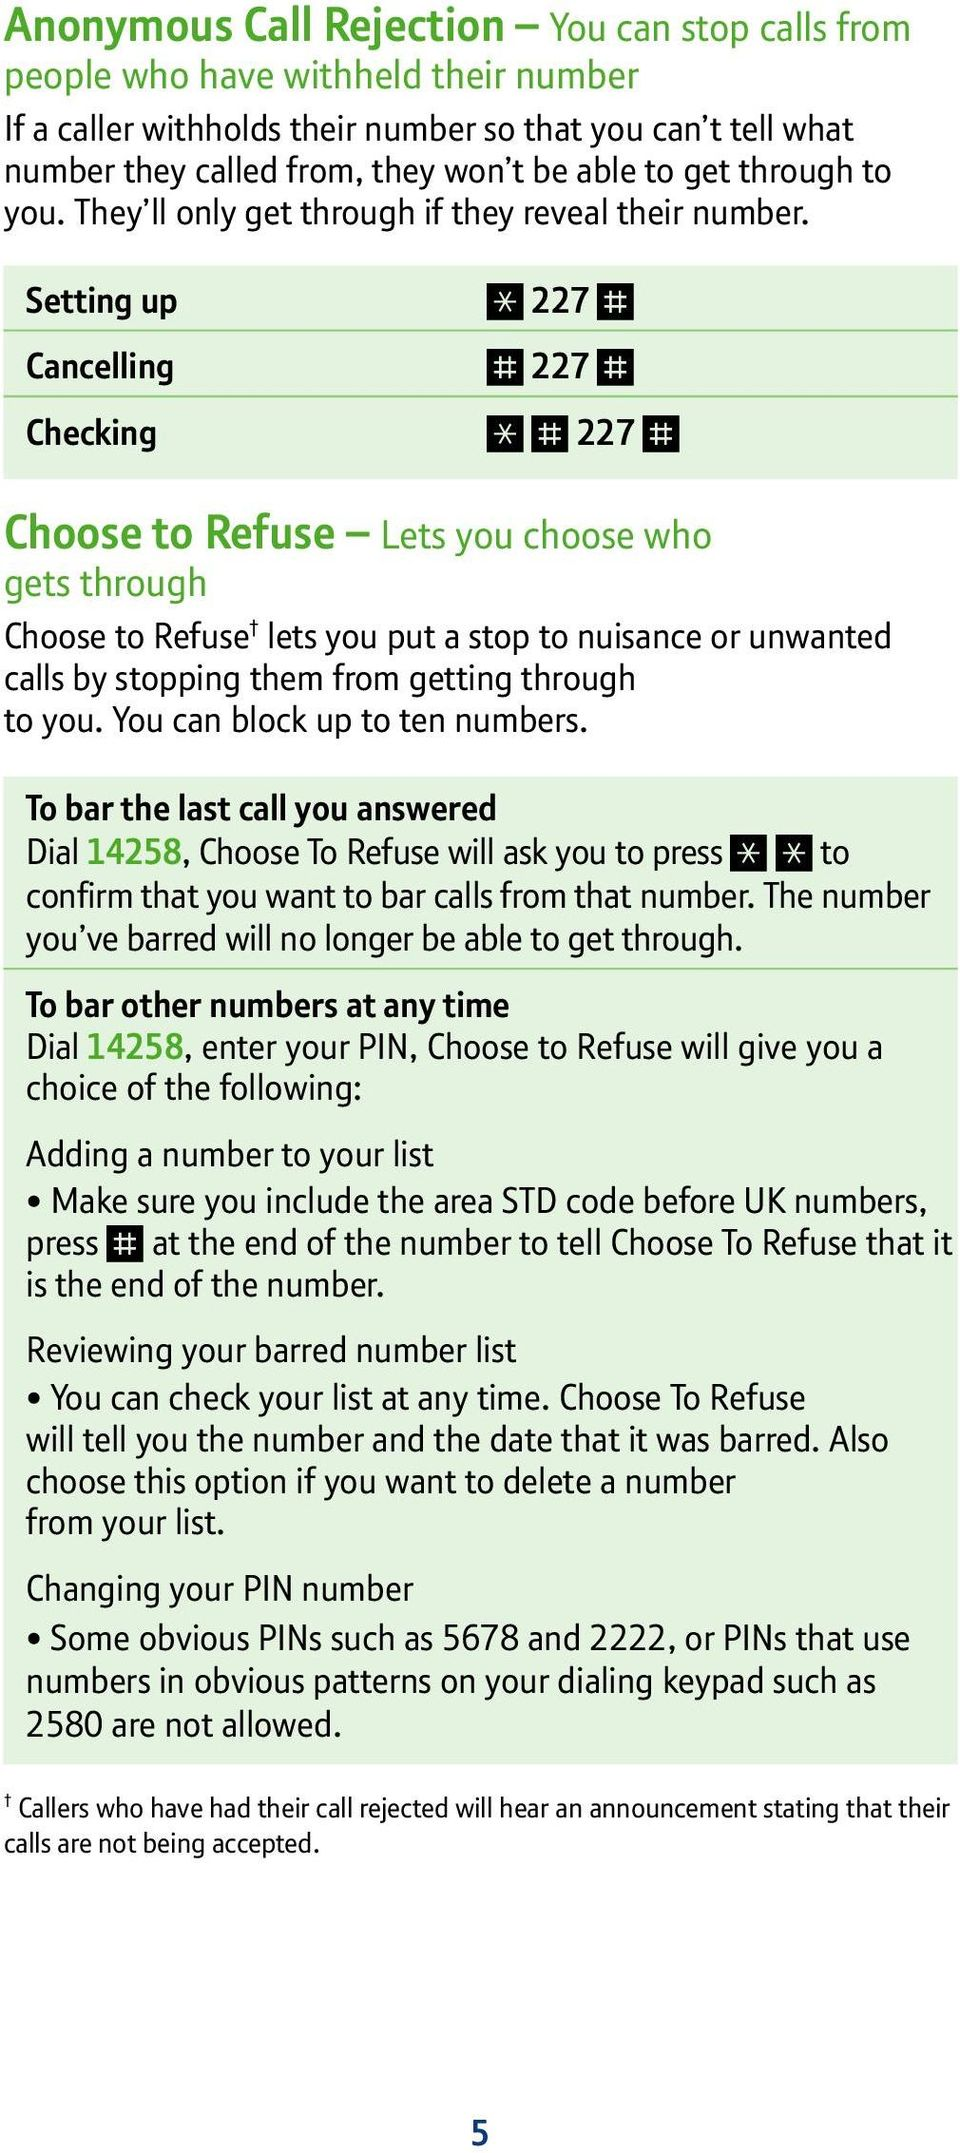 Setting up 227 Cancelling 227 Checking 227 Choose to Refuse Lets you choose who gets through Choose to Refuse lets you put a stop to nuisance or unwanted calls by stopping them from getting through